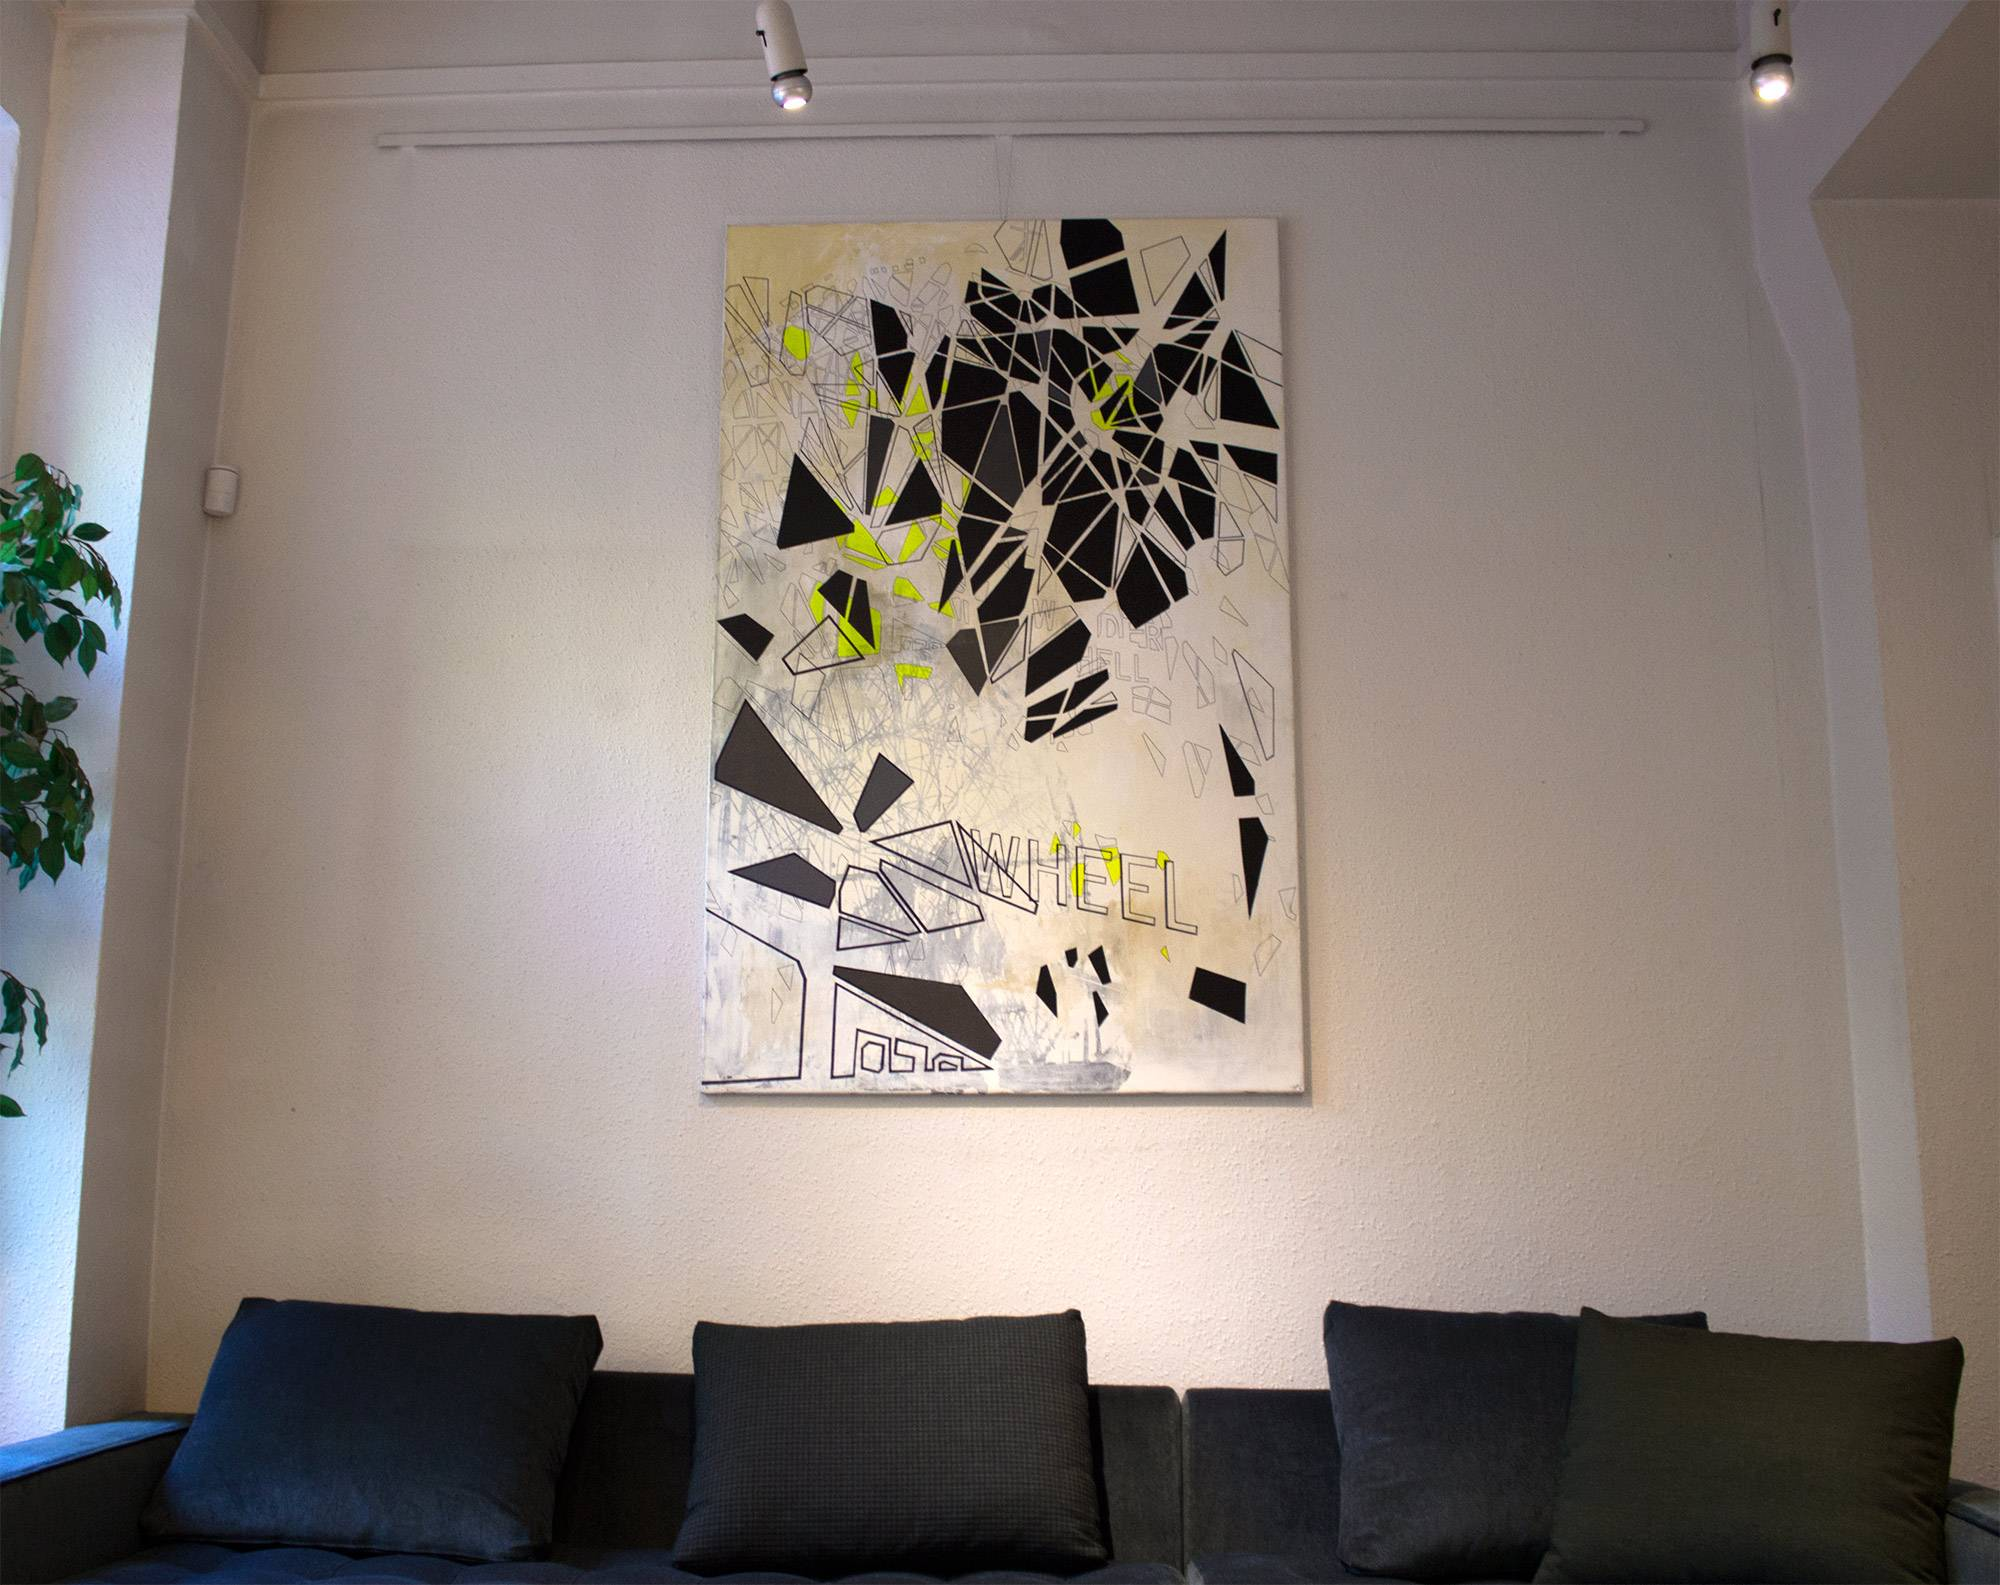 Art exhibitions in Copenhagen of paintings, drawings, art prints, limited edition art posters. Discover original works by Danish and international artists.